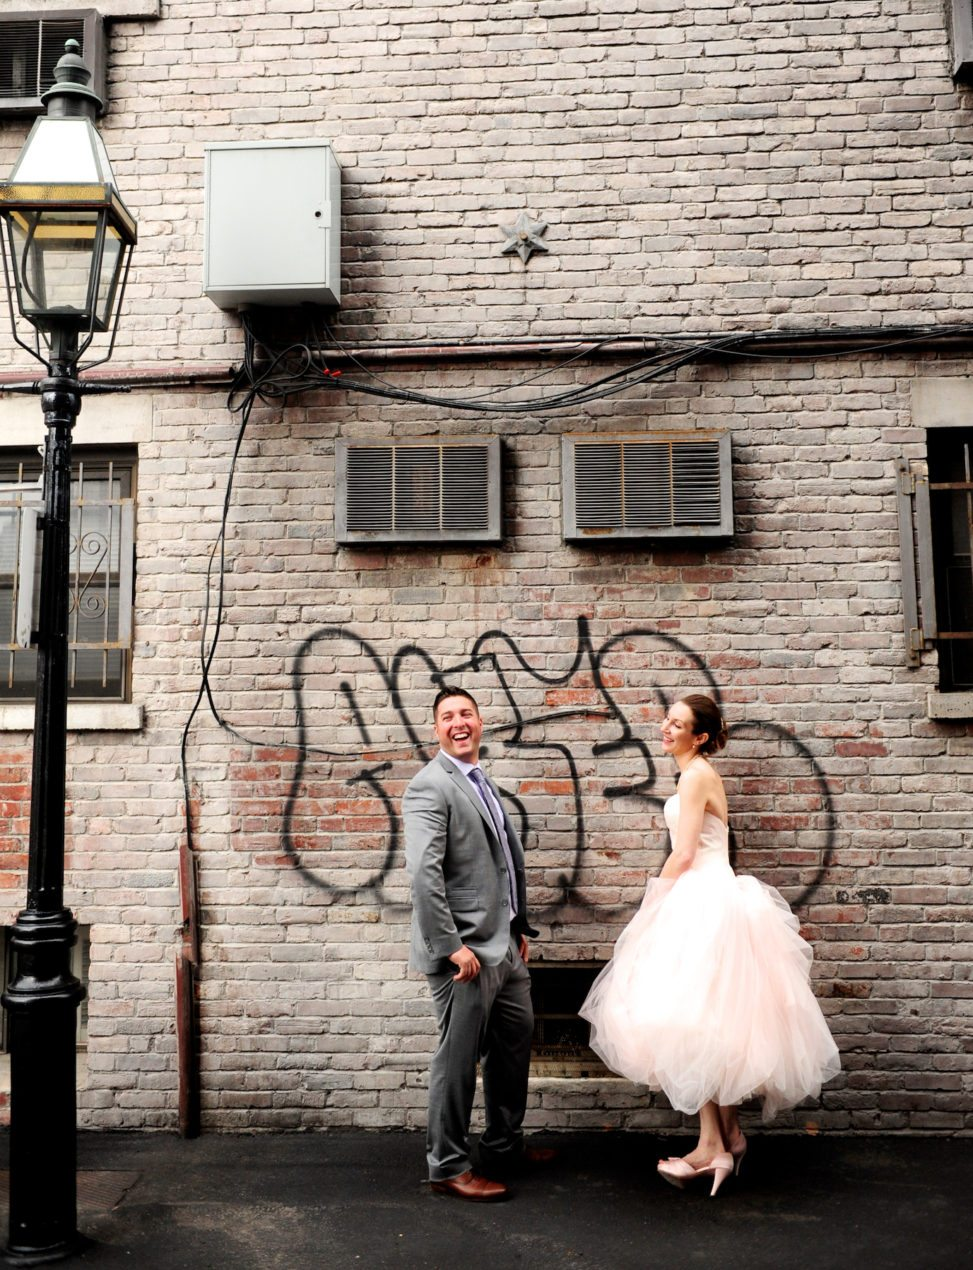 a bride and groom pose in front of graffiti